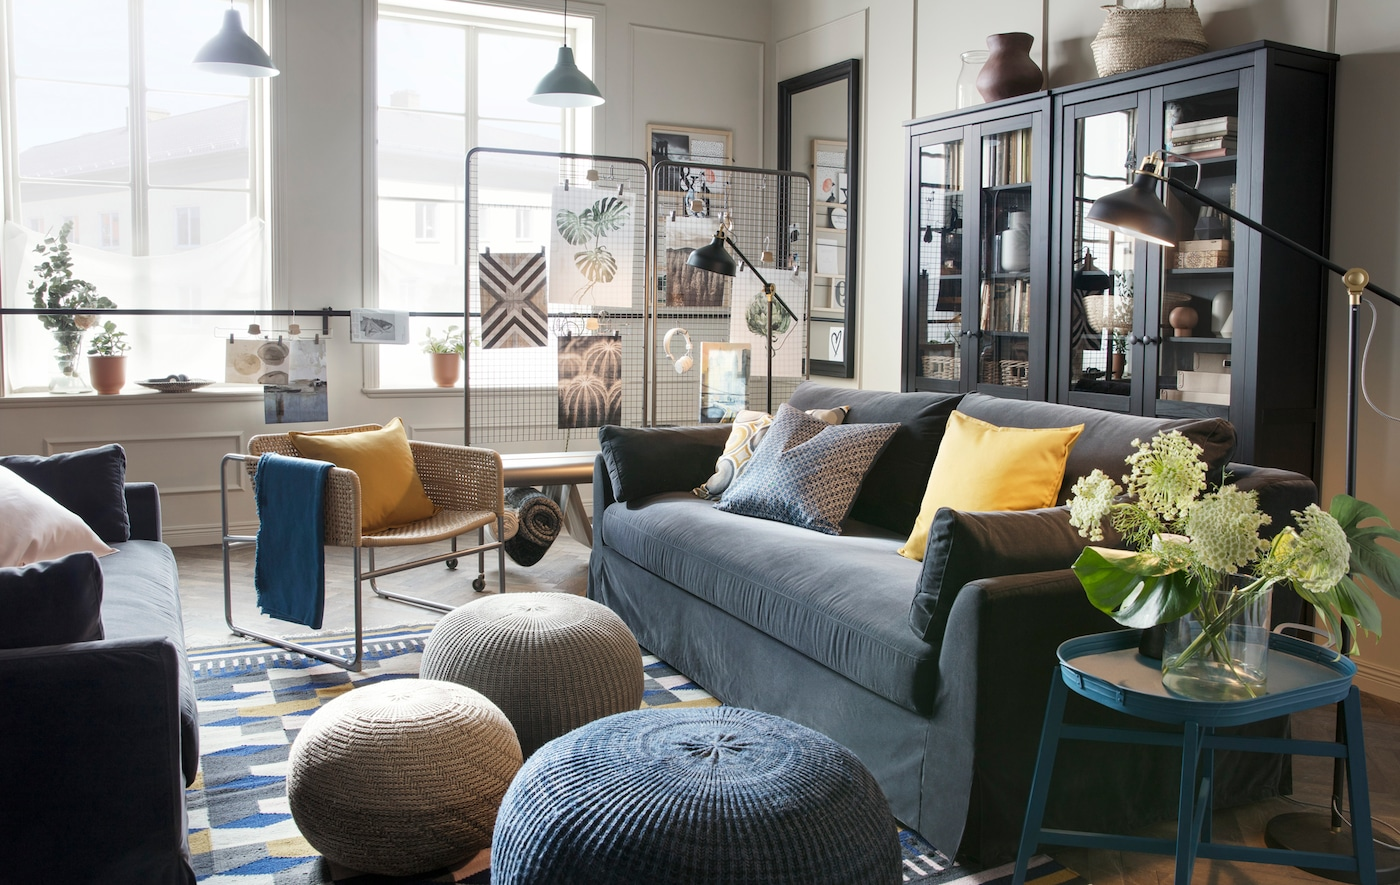 A large living room with two blue sofas facing each other, armchairs, footstools and large display cabinet.